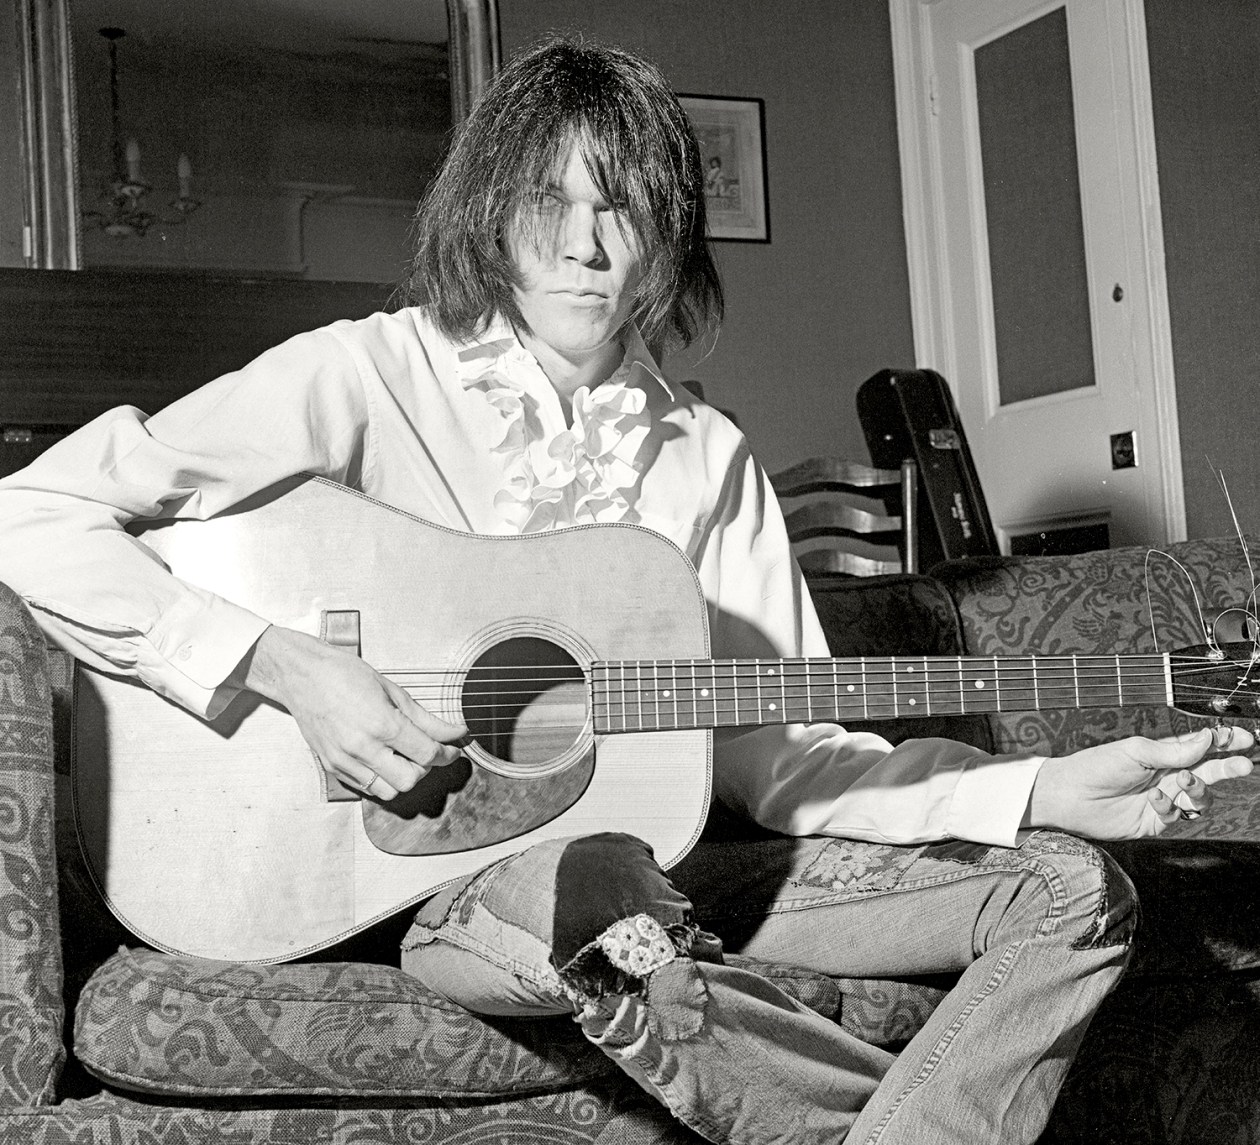 Neil Young and Crazy Horse Winter American Tour